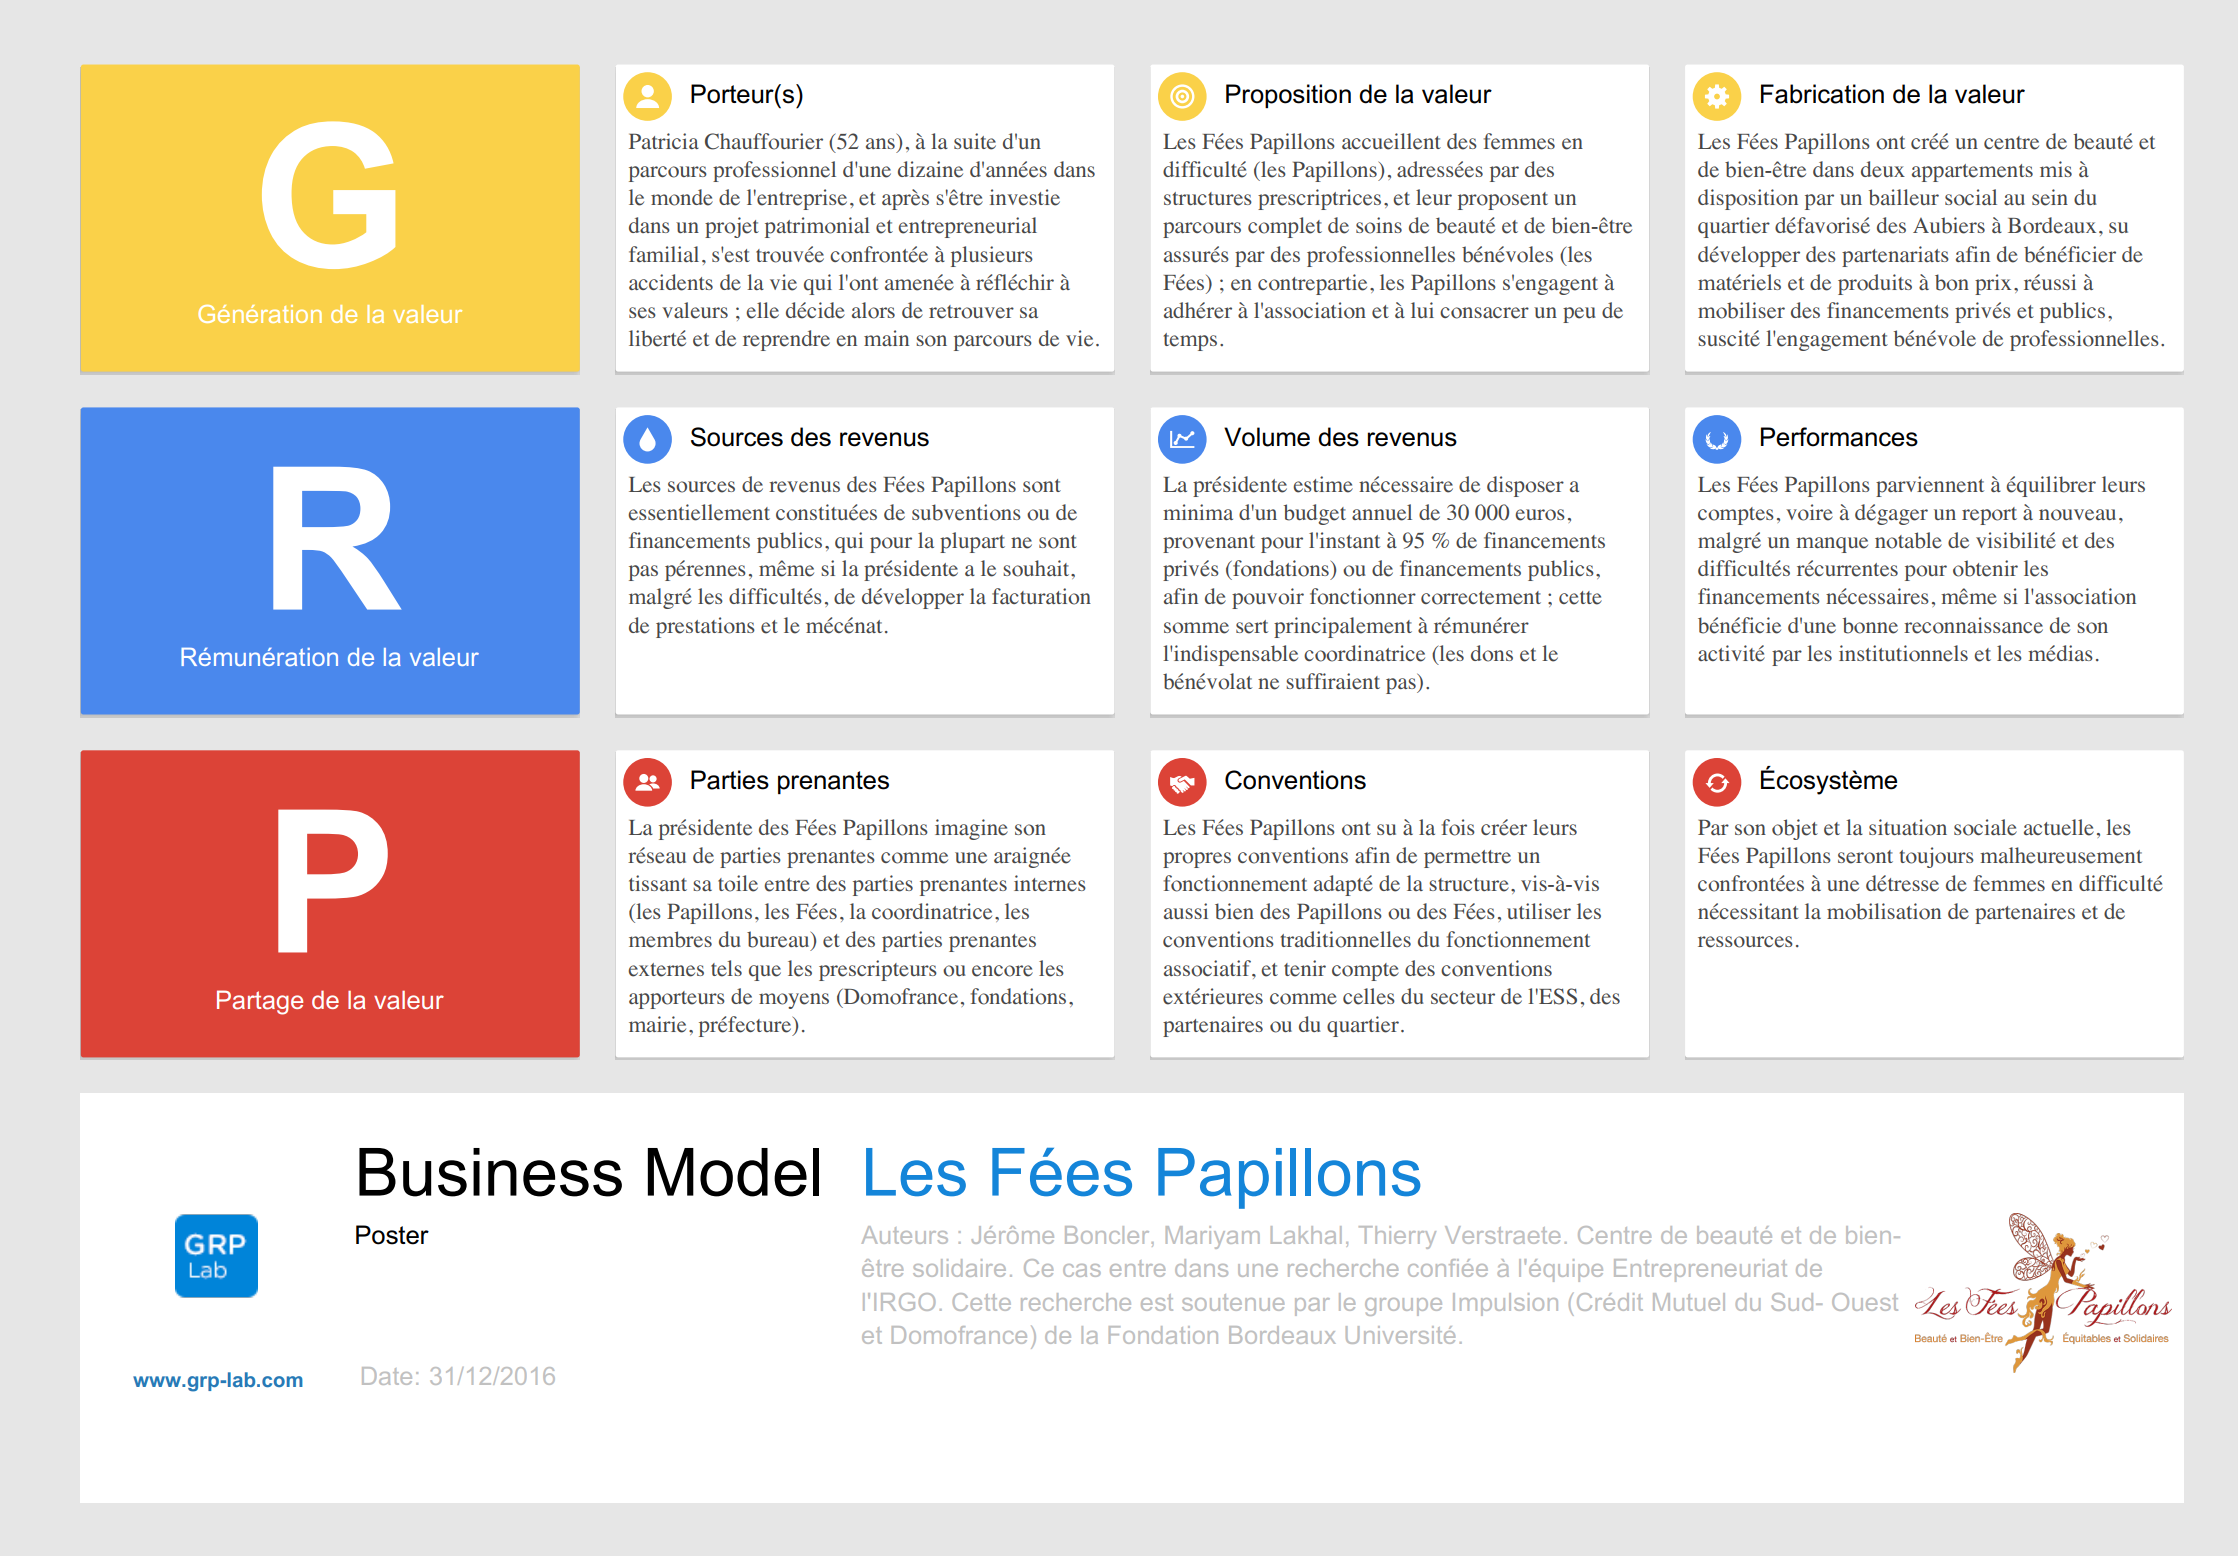 Les Fées Papillons - Business Model Version Poster